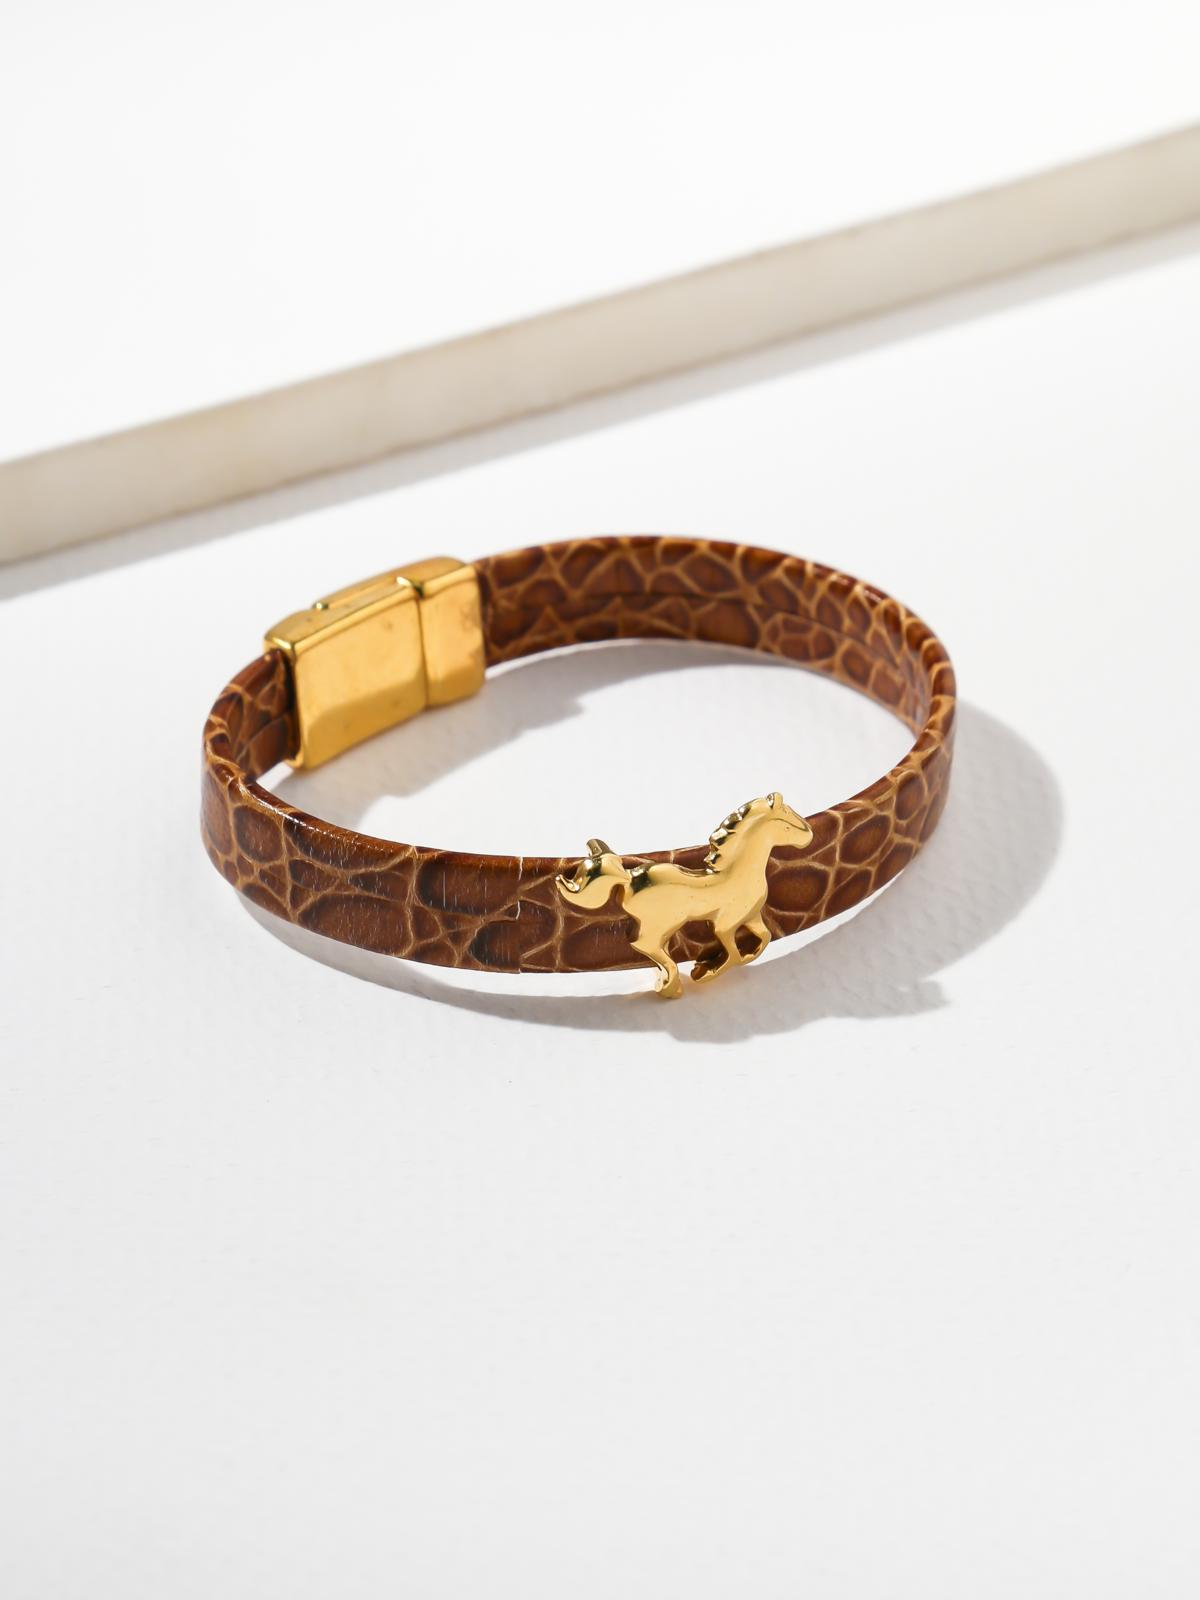 The Giddy Up Bracelet